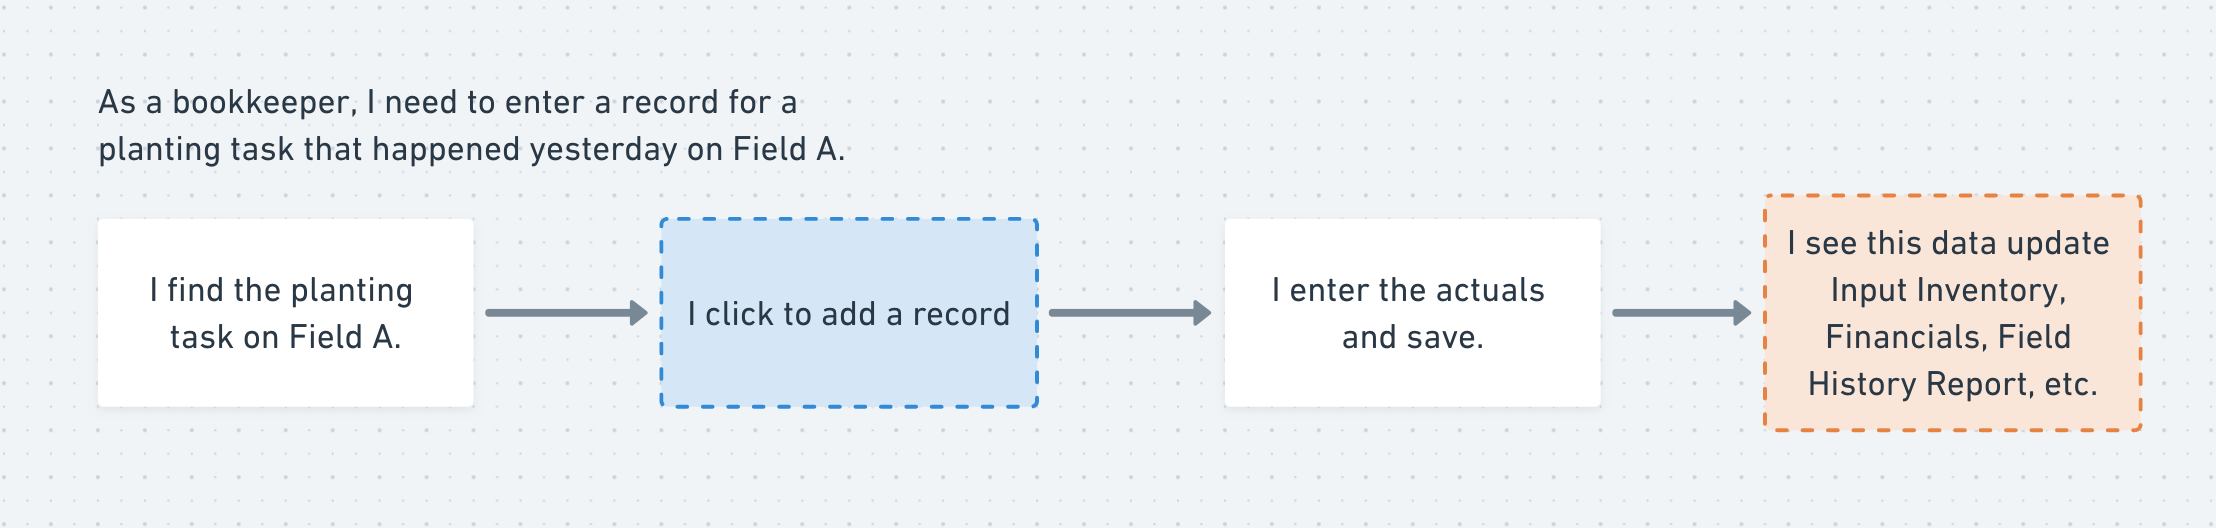 Specific example of a Planting record entered by a bookkeeper via web with data distribution